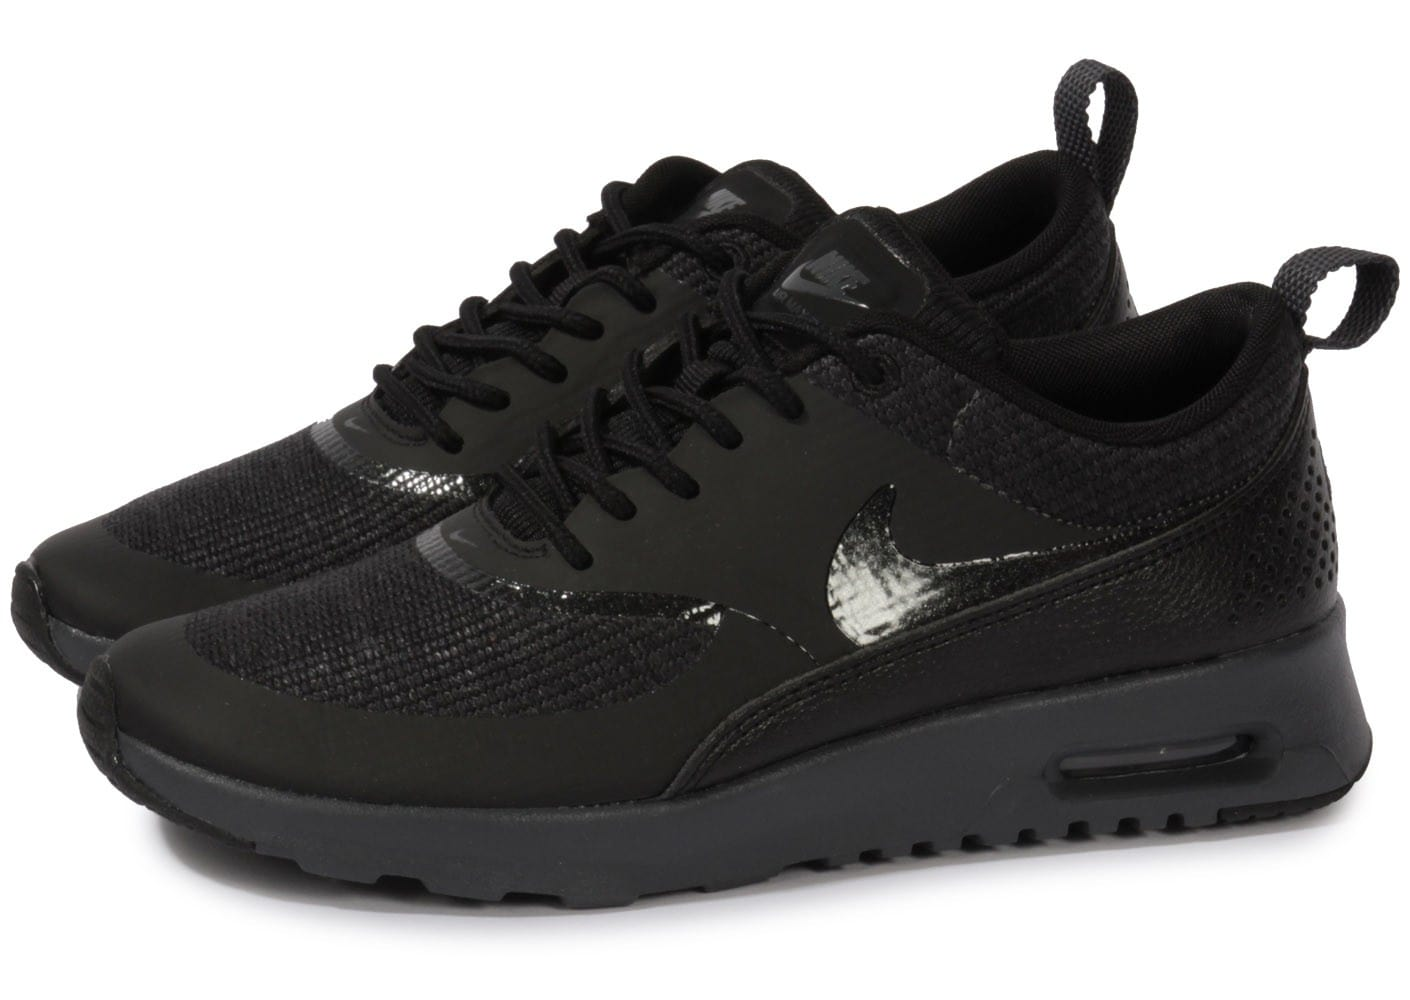 nike air max thea noir anthracite chaussures chaussures chausport. Black Bedroom Furniture Sets. Home Design Ideas